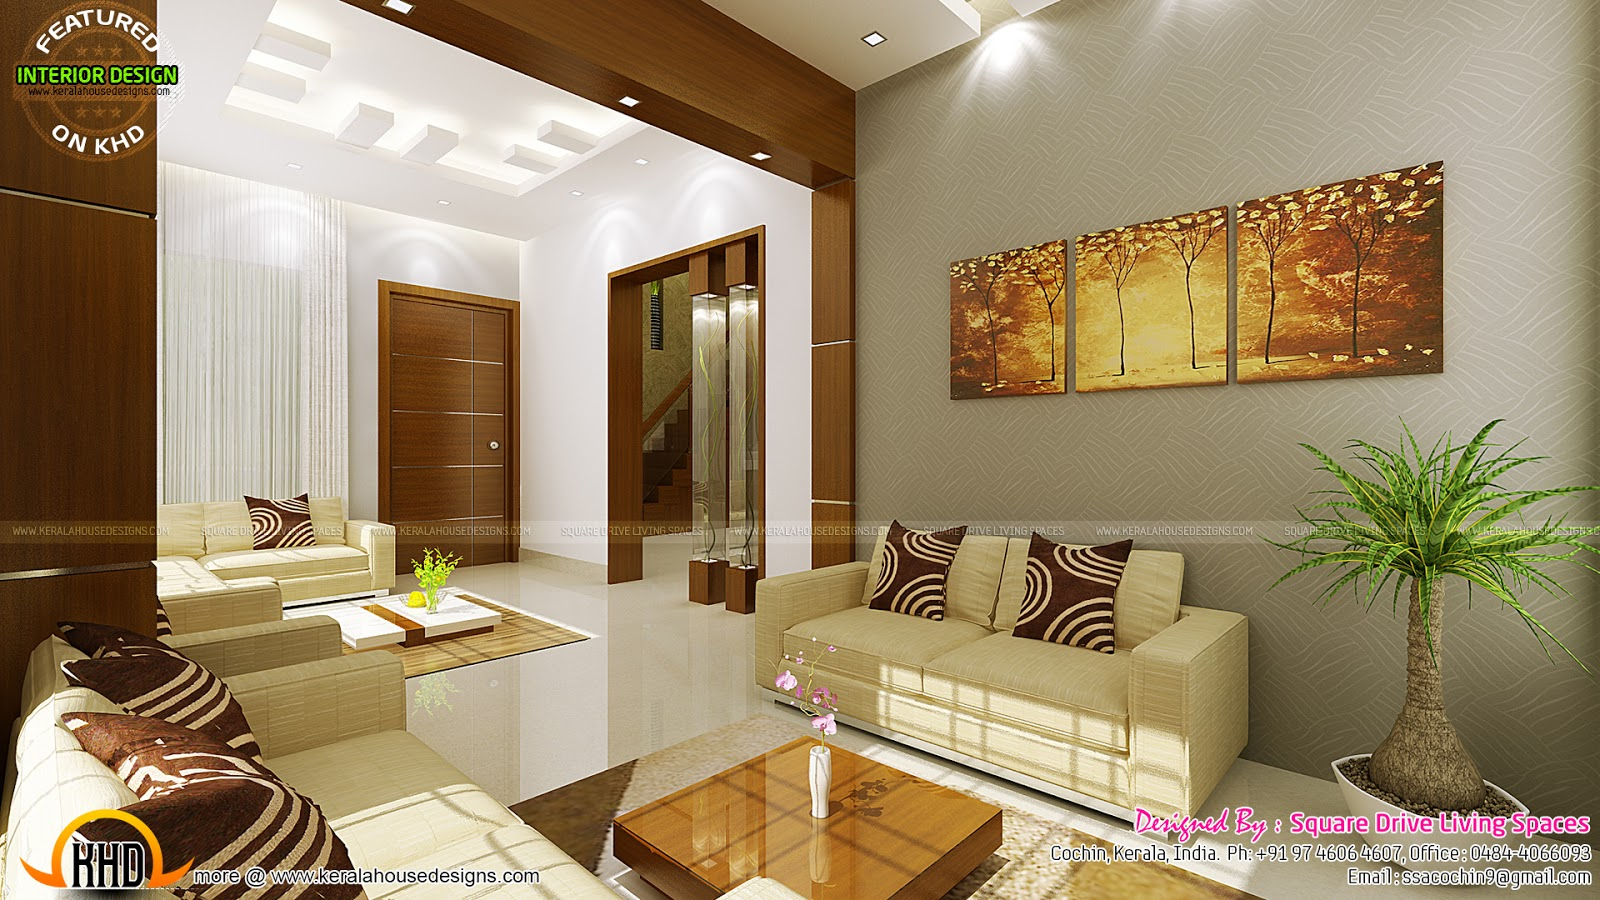 Contemporary kitchen dining and living room kerala home for Small apartment interior design india